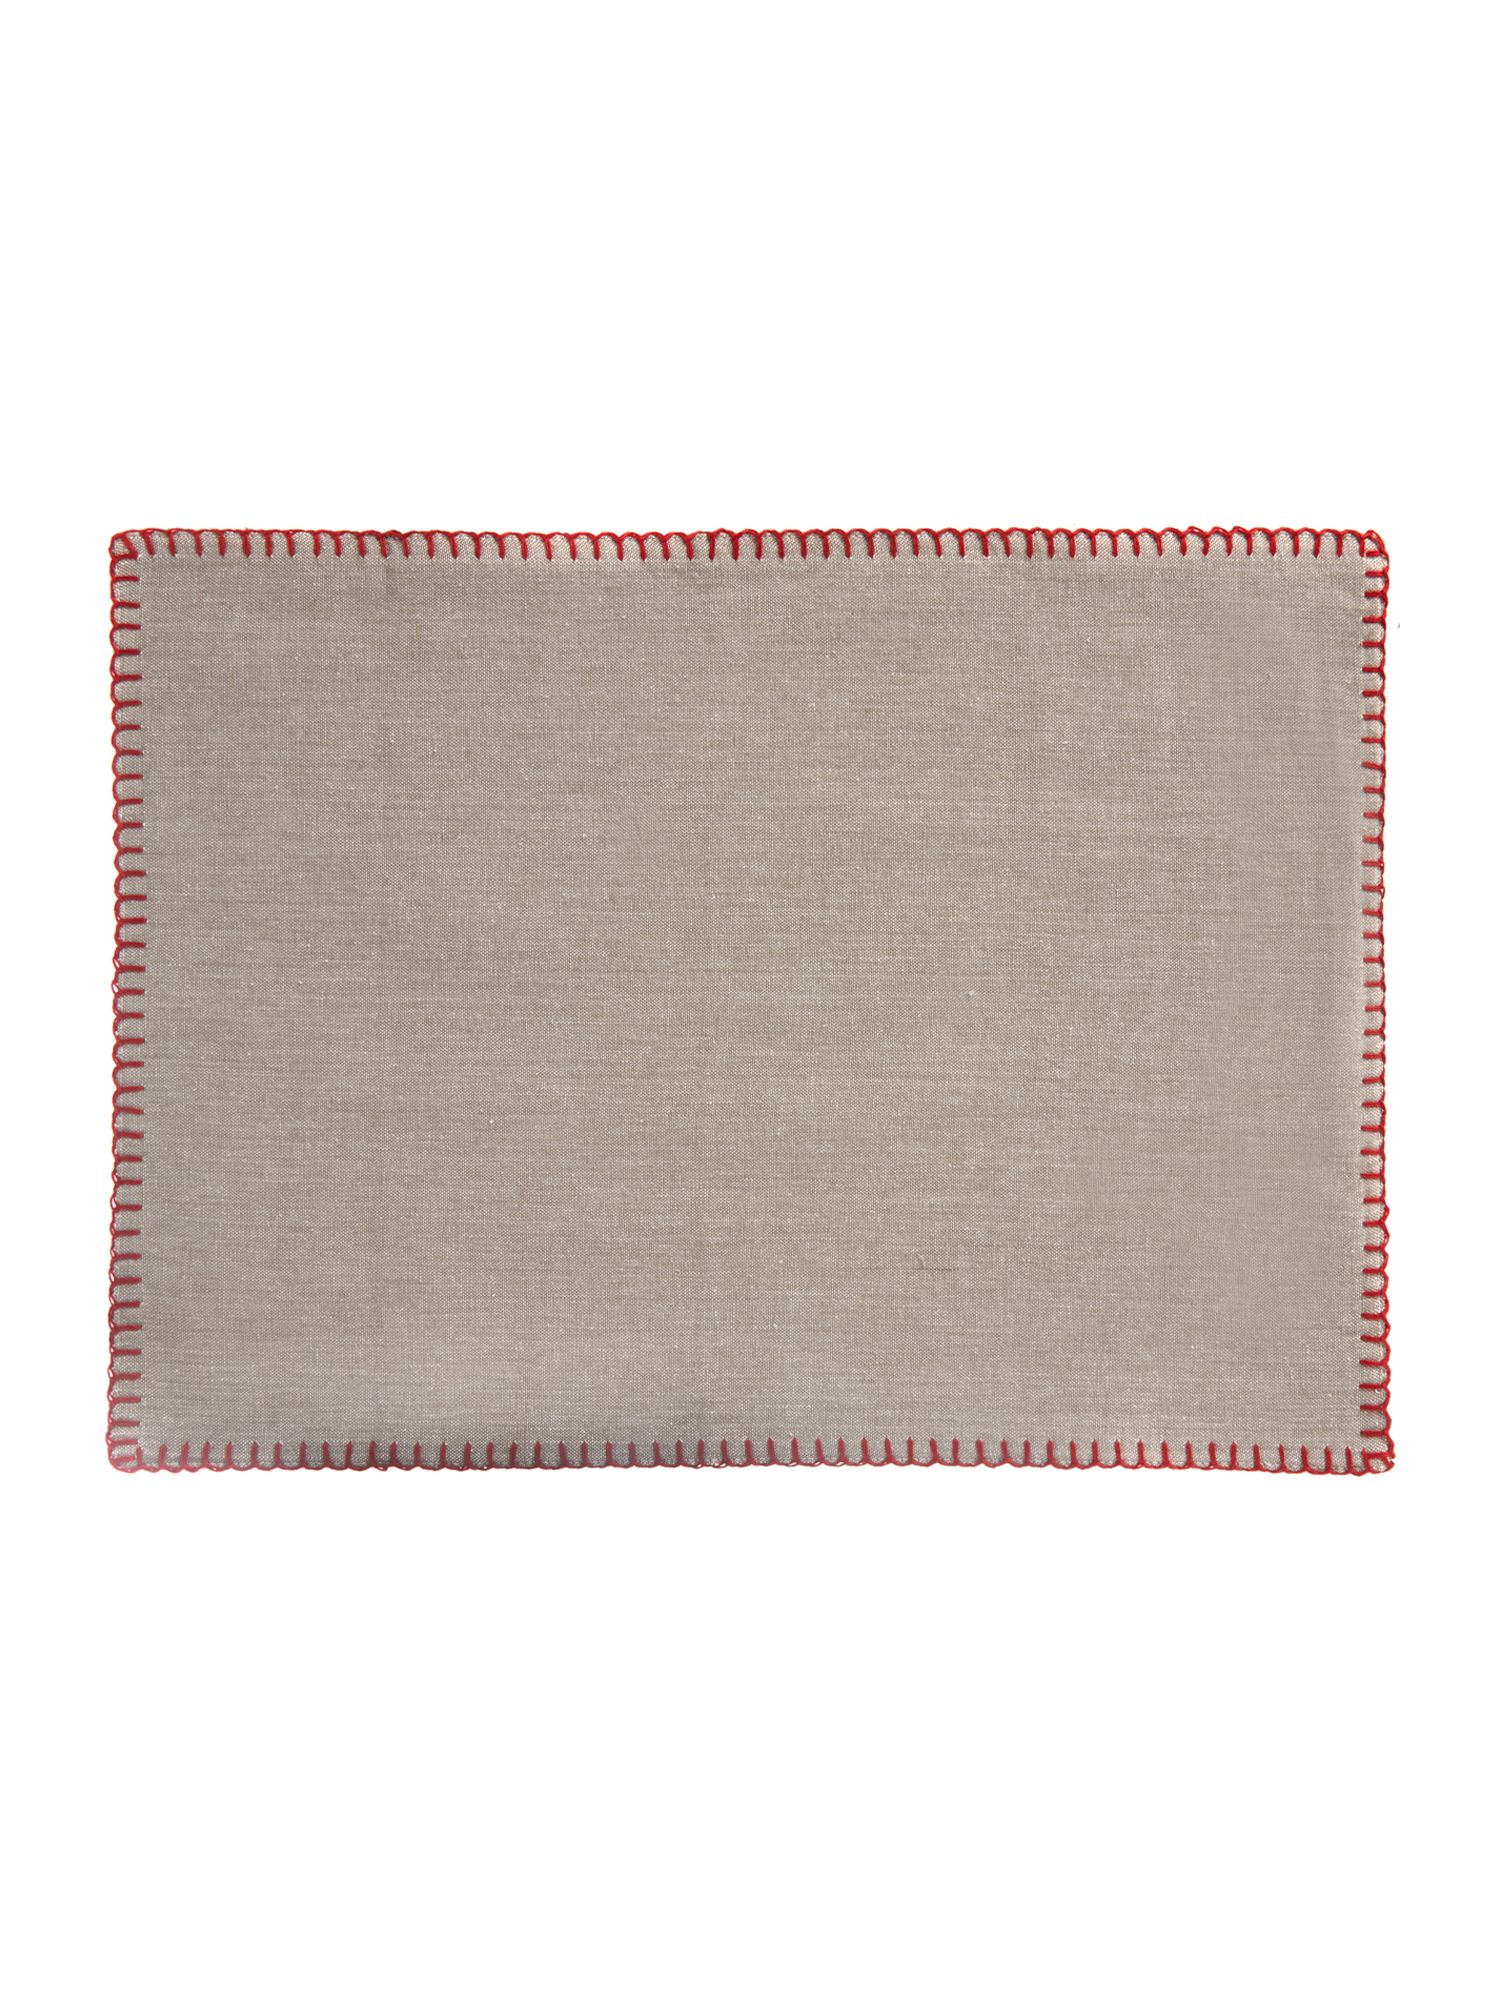 Red Cotten Tablelinen Range